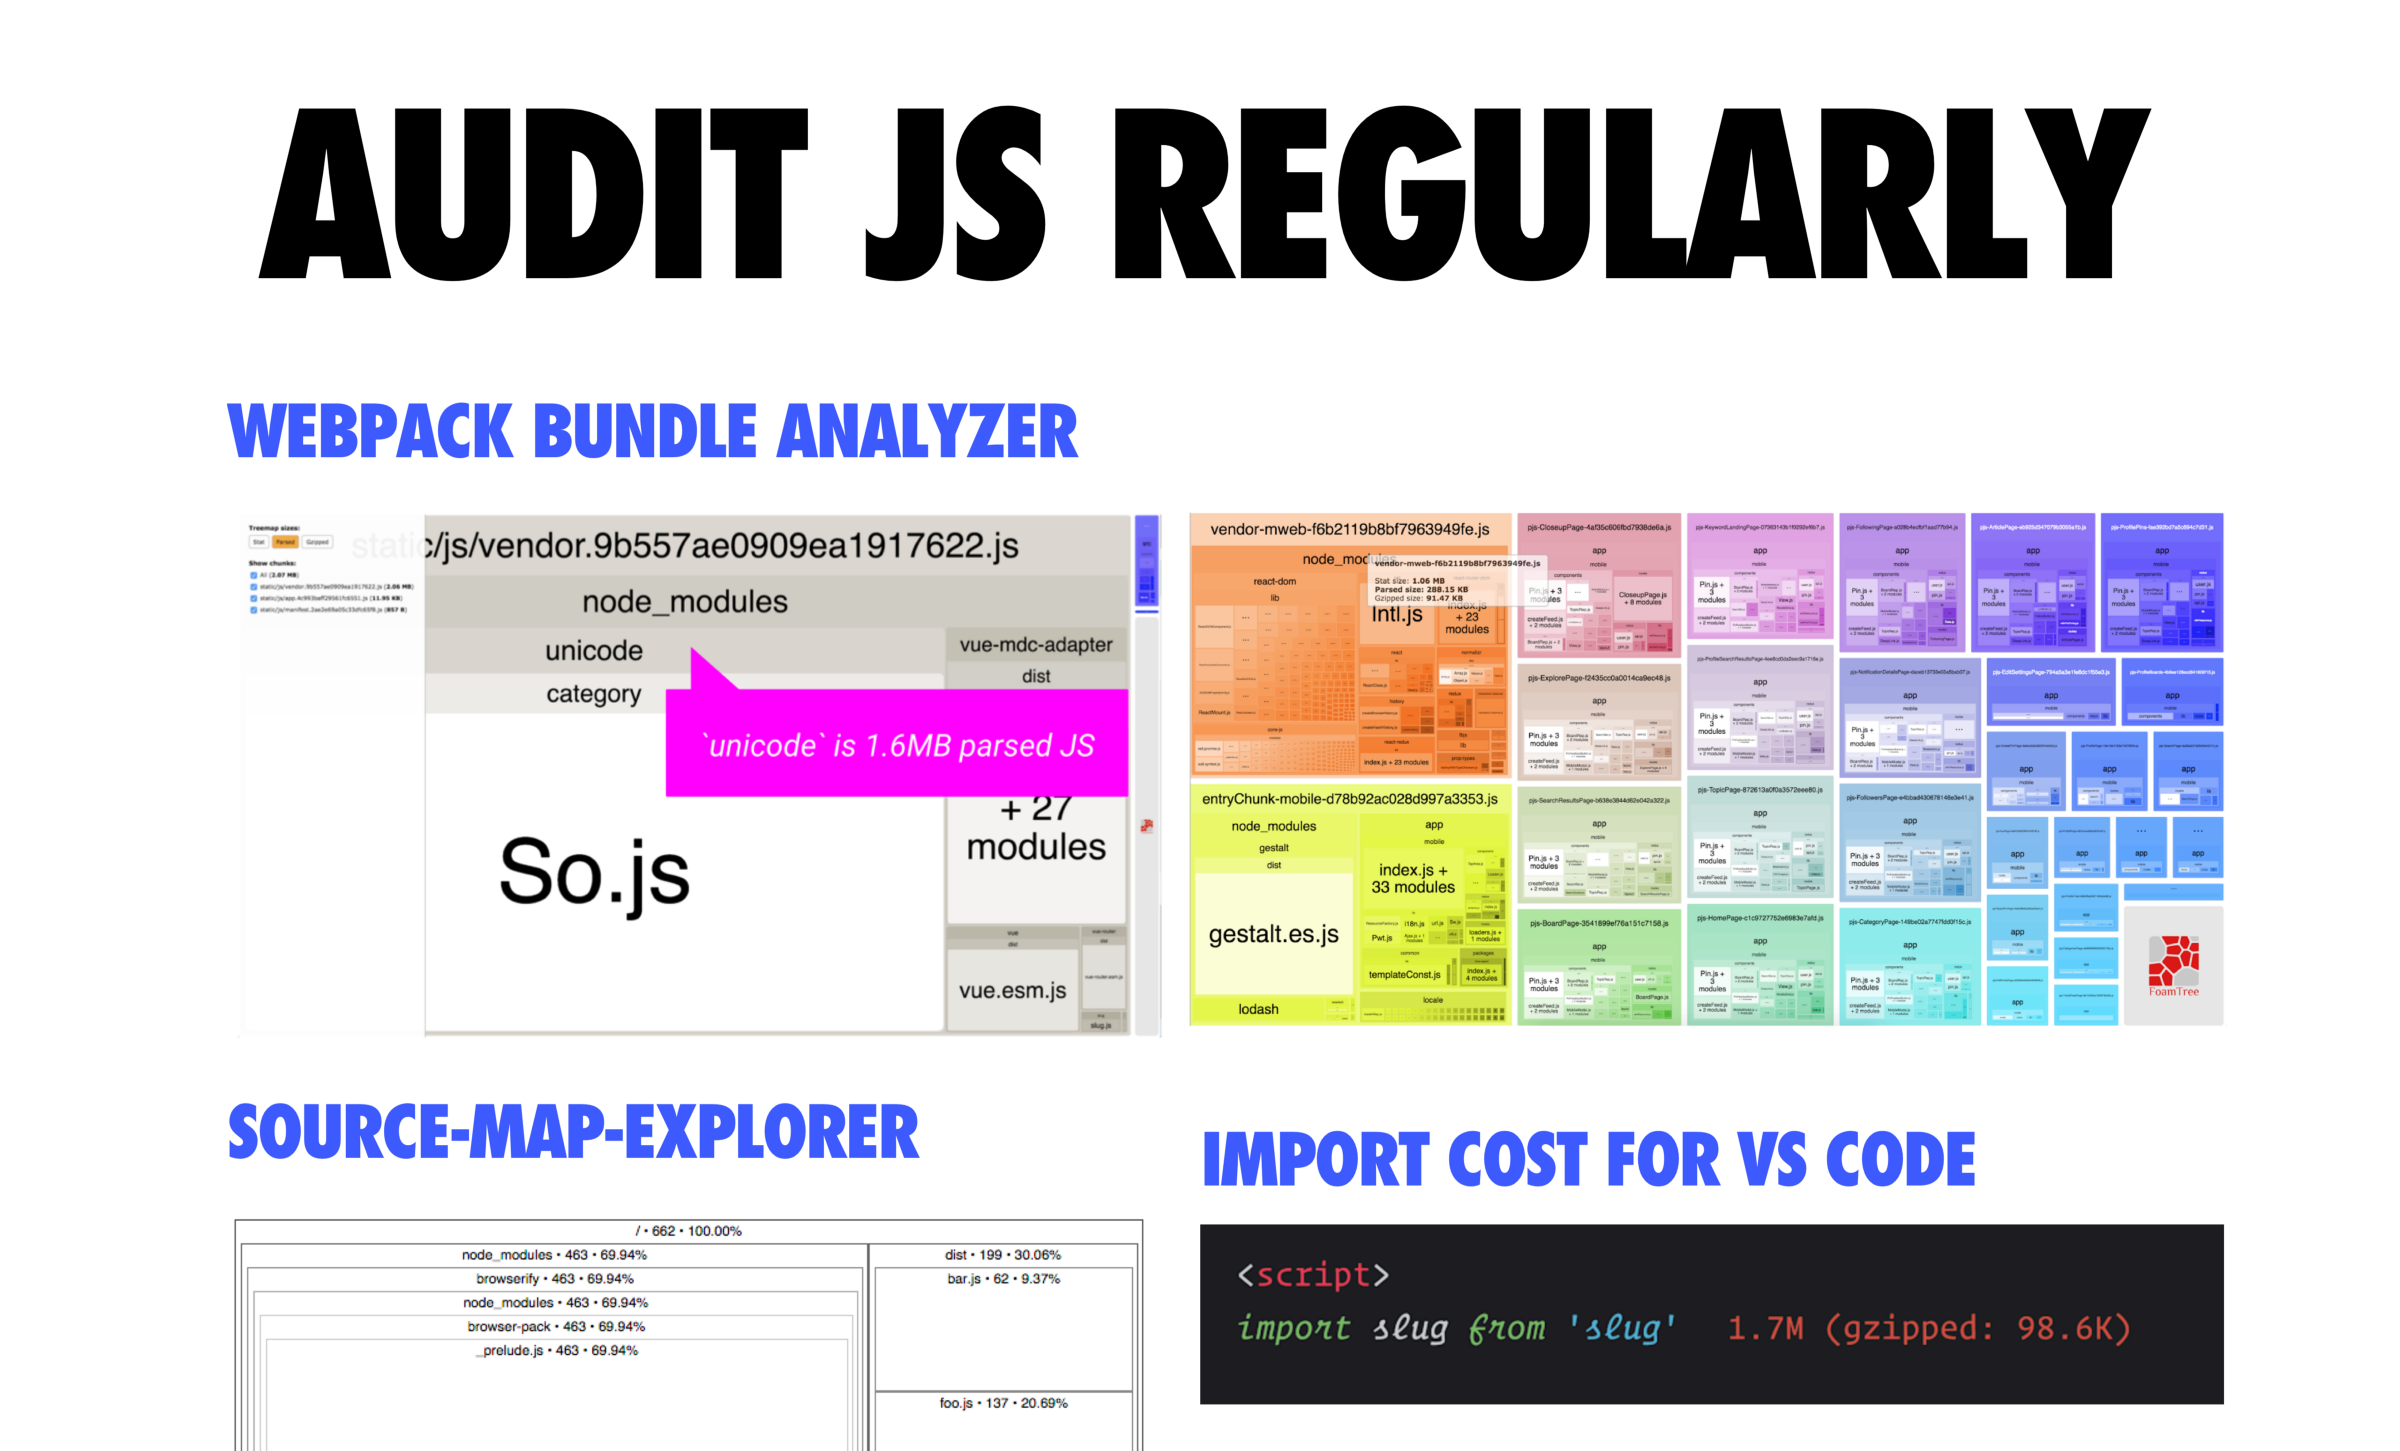 Tools Like Webpack Bundle Analyzer Are Great For Analyzing Your Built Javascript Bundles And Import Cost For Visual Code Is Excellent For Visualizing